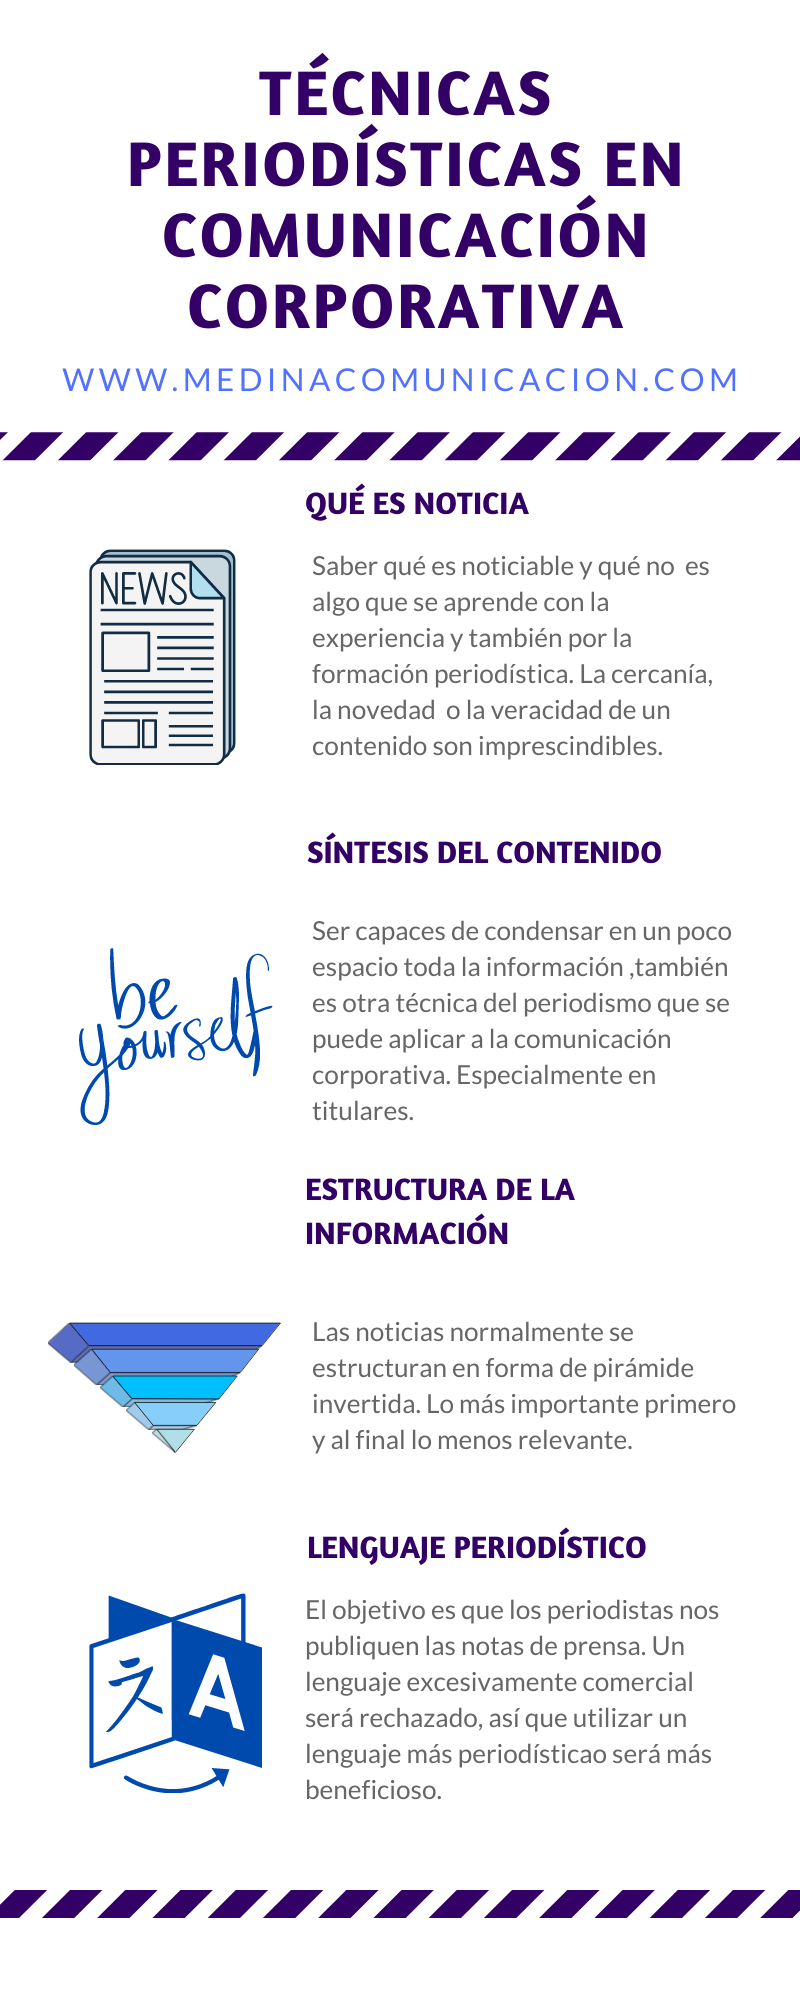 Técnicas periodísticas en comunicación corporativa #infografia #infographic #marketing